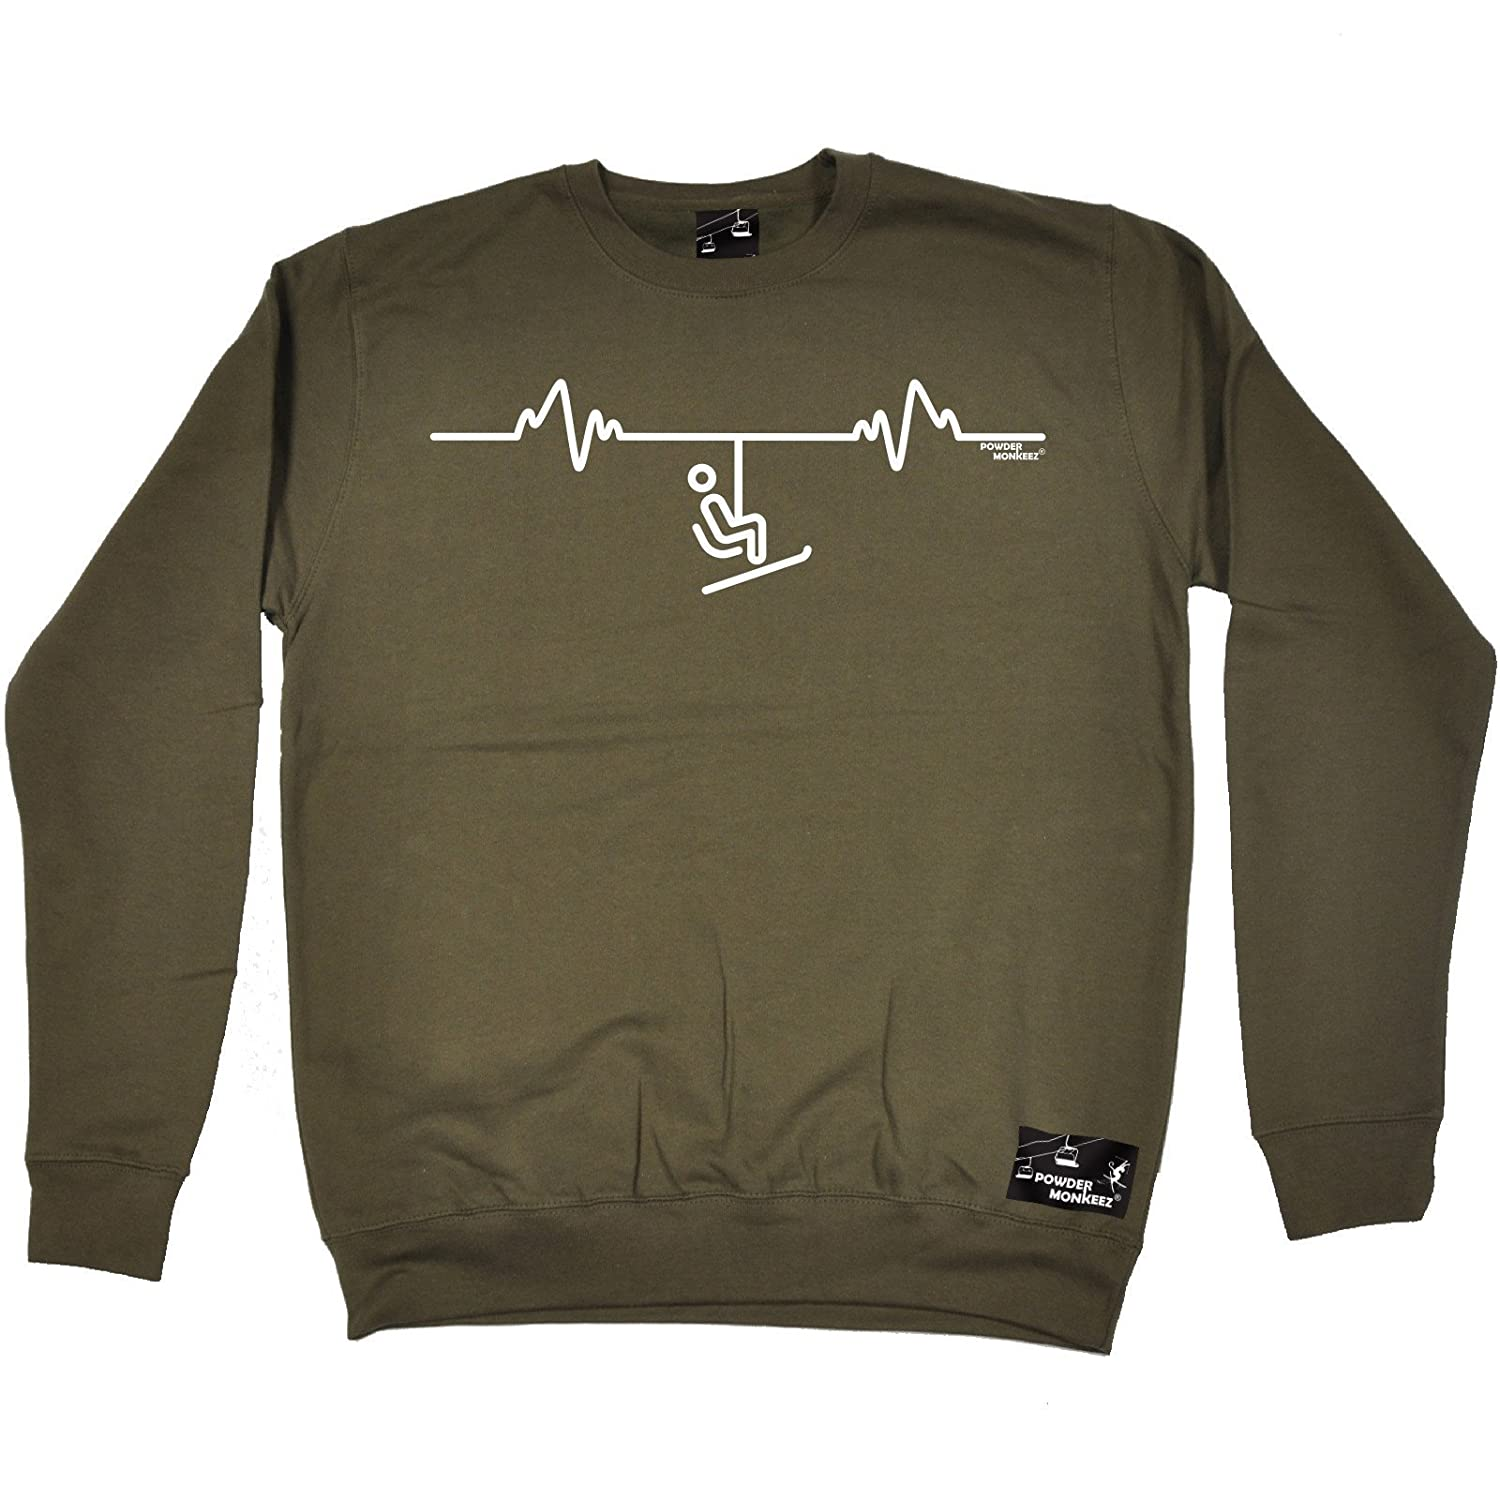 PM Premium Apres - Ski Lift Pulse - SWEAT